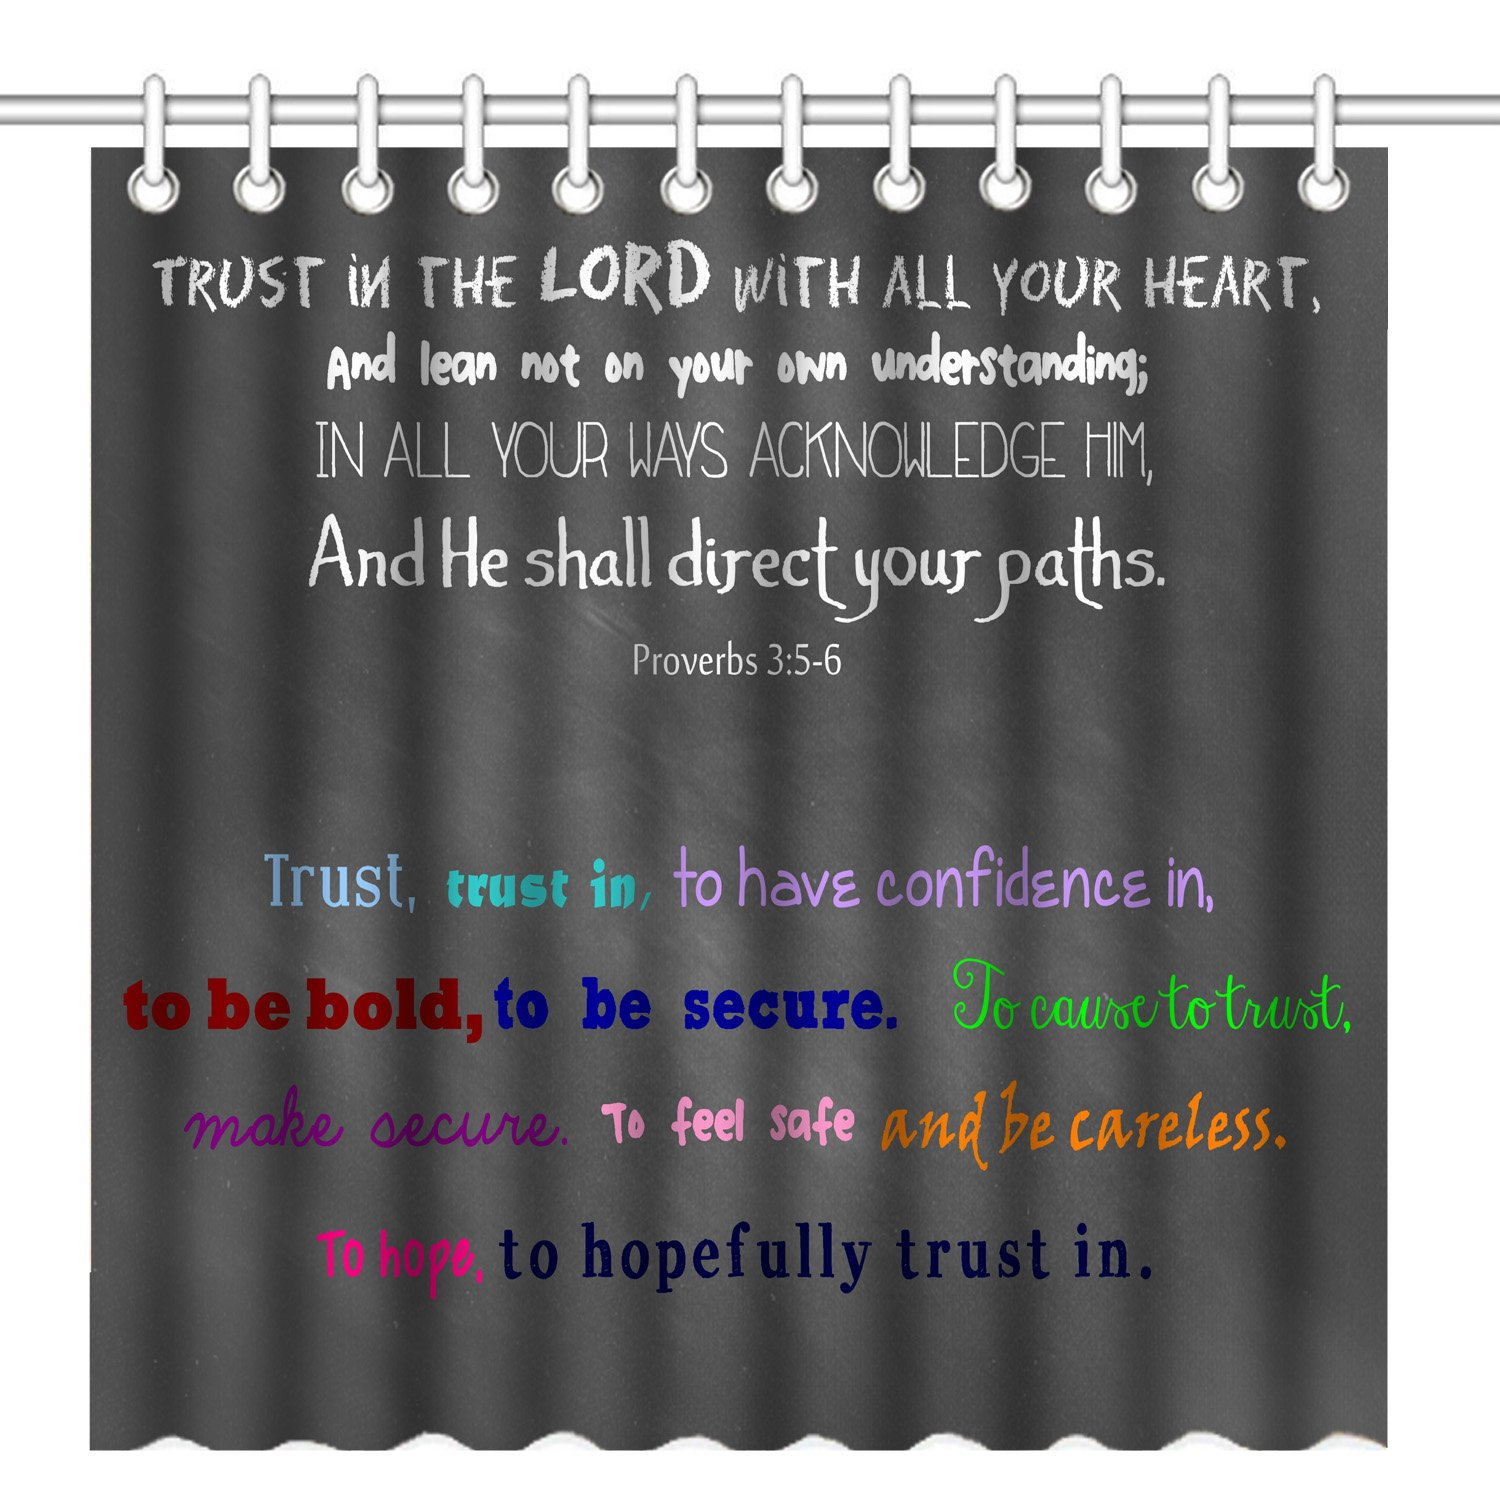 Wknoon 72 x 72 Inch Shower Curtain, Christian Bible Verse Scripture Quotes Proverbs Trust in The Lord with All Your Heart, Waterproof Polyester Fabric Decorative Bathroom Bath Curtains by Wknoon